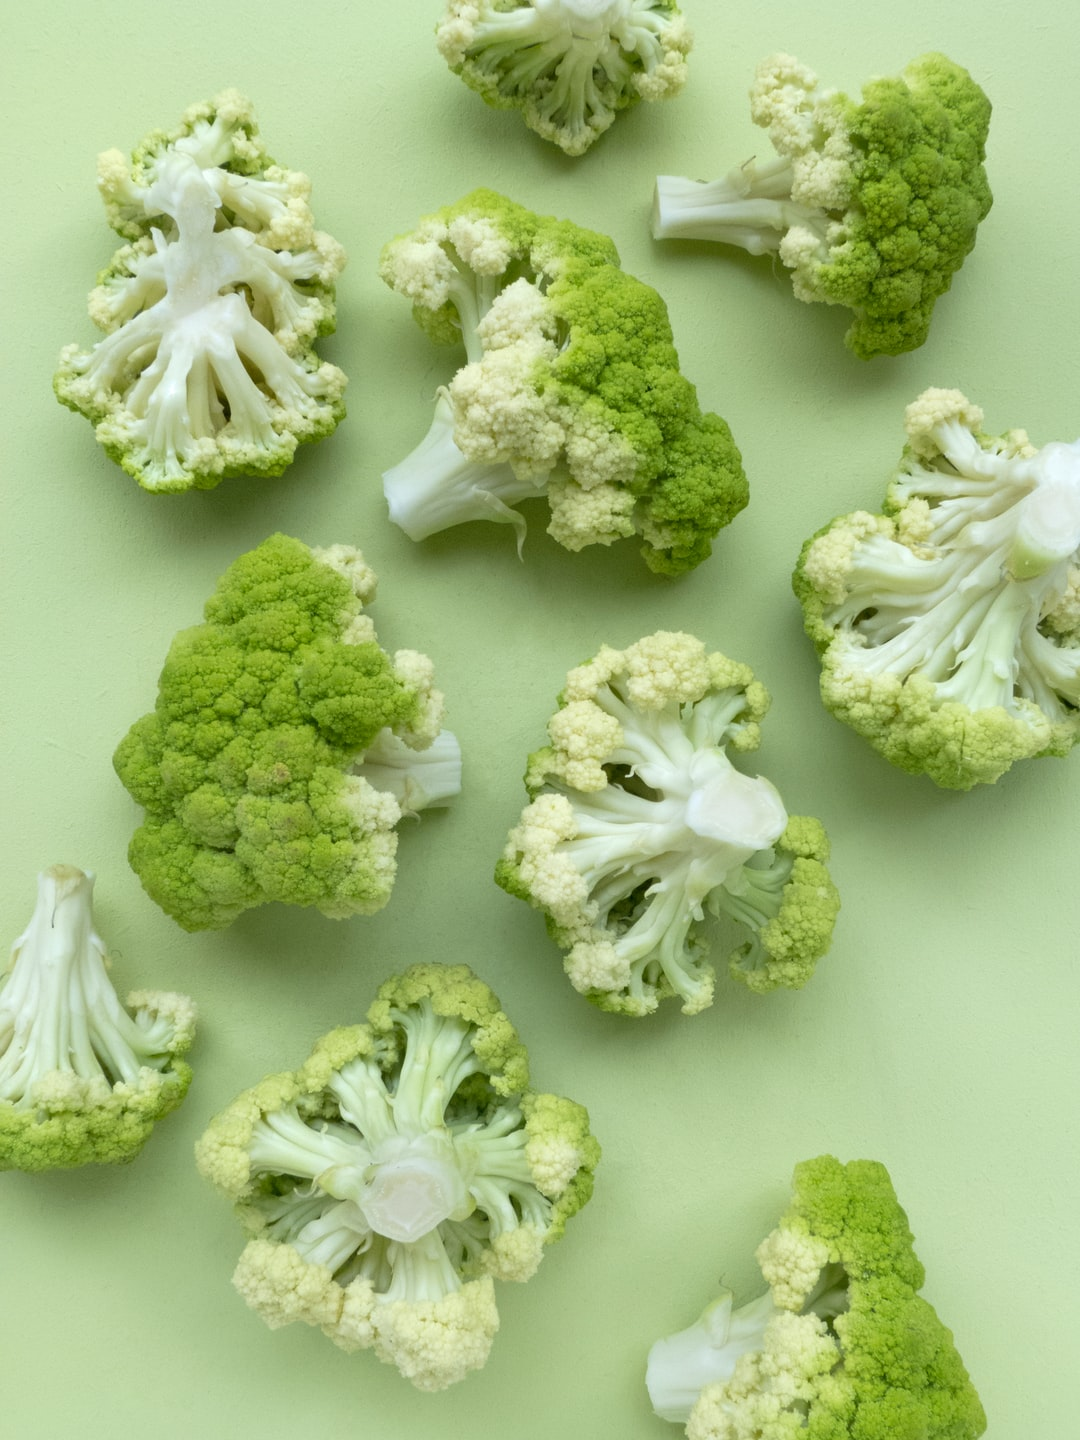 I am intrigued by the architecture of (edible) botanicals like cauliflower. And I love colour gradients, so I had to capture these cauliflower florets. I painted the backdrop in a matching green colour, styled the florets in a natural way and shot them from above. All my photos are taken with natural light.